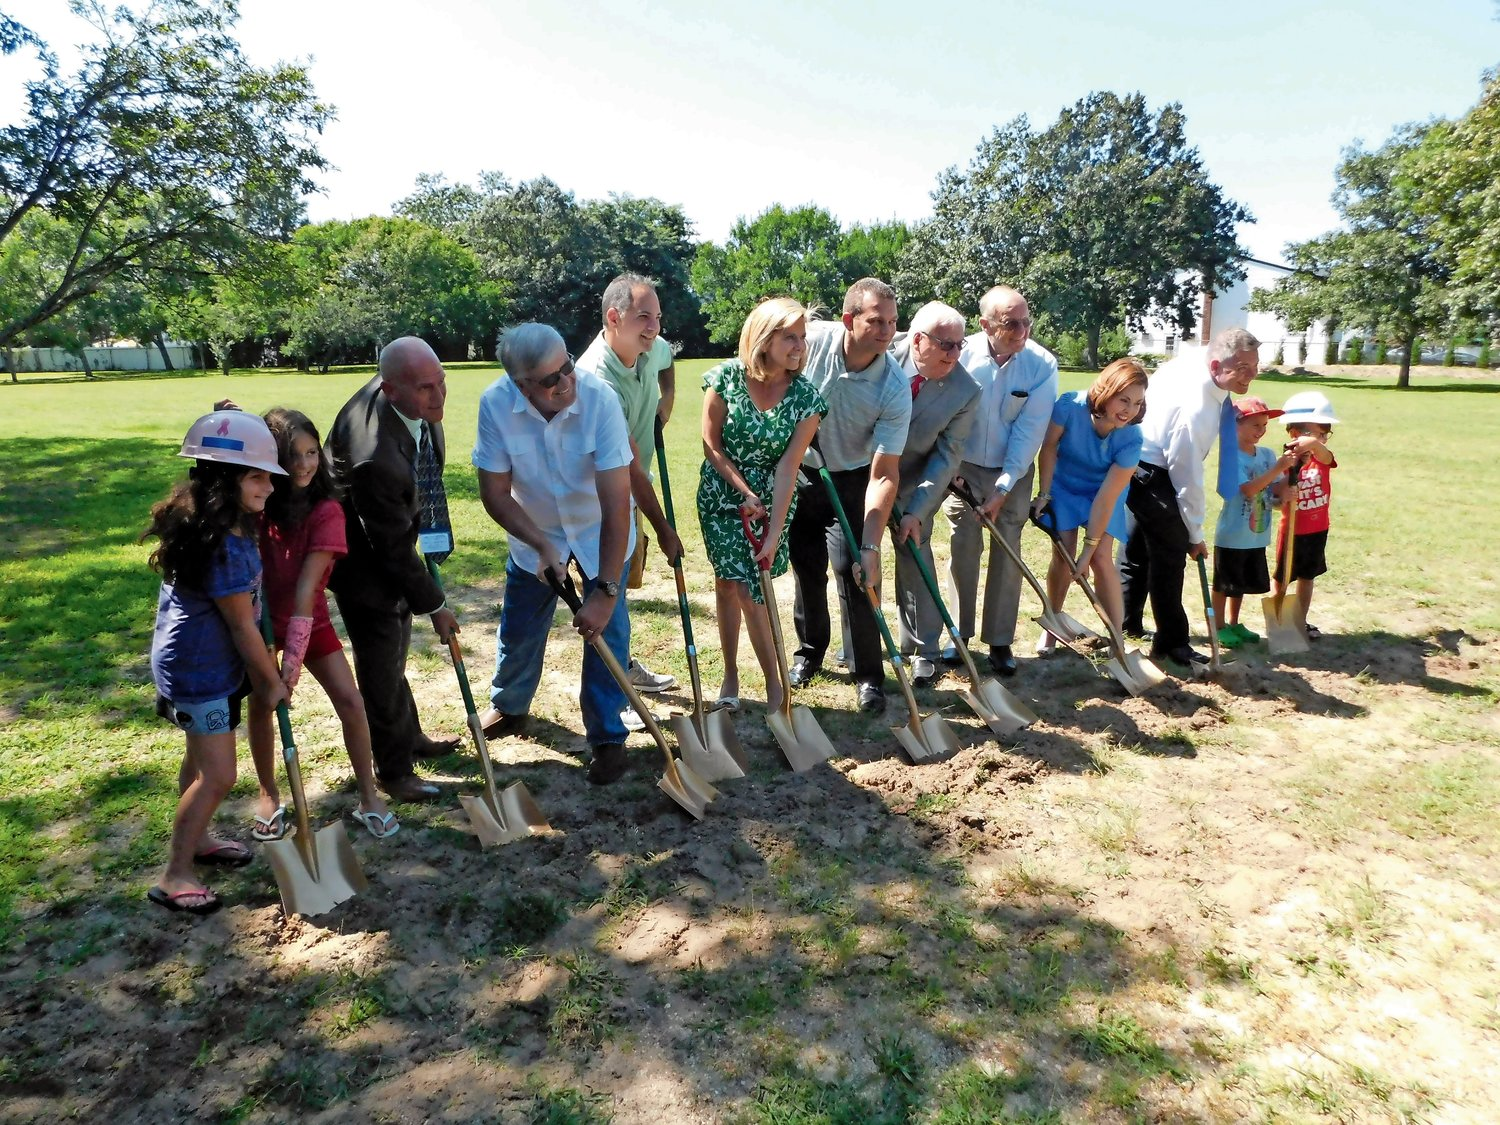 Elected officials and South Merrick Community Civic Association members broke ground on the playground on Aug. 23, 2018.